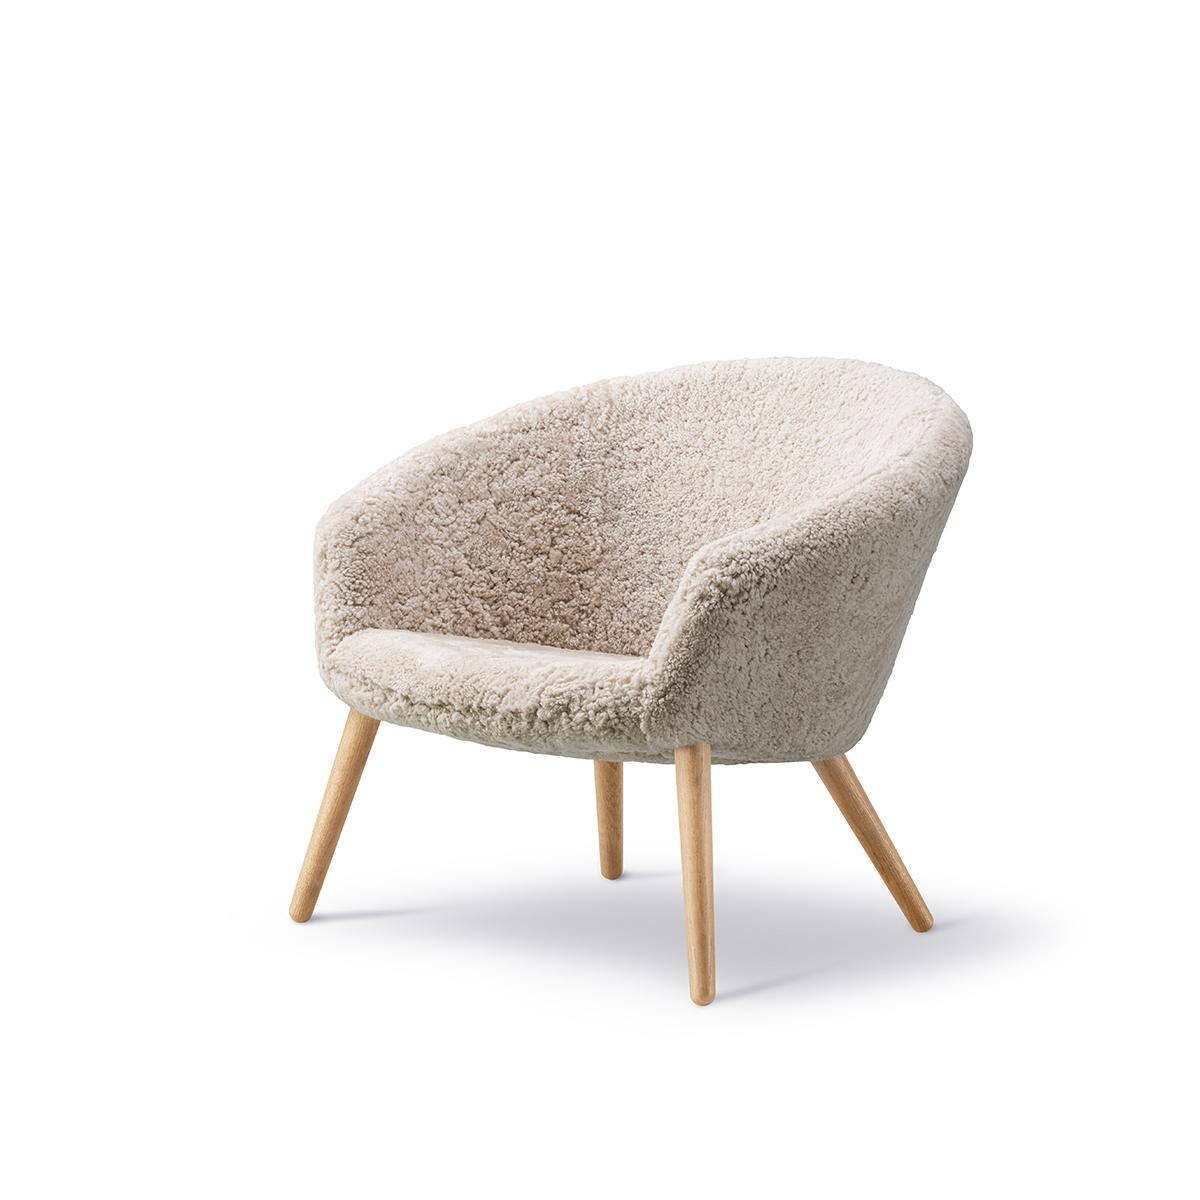 NDEasyChair_0003_ND_2631_sheepskin_oak_v2